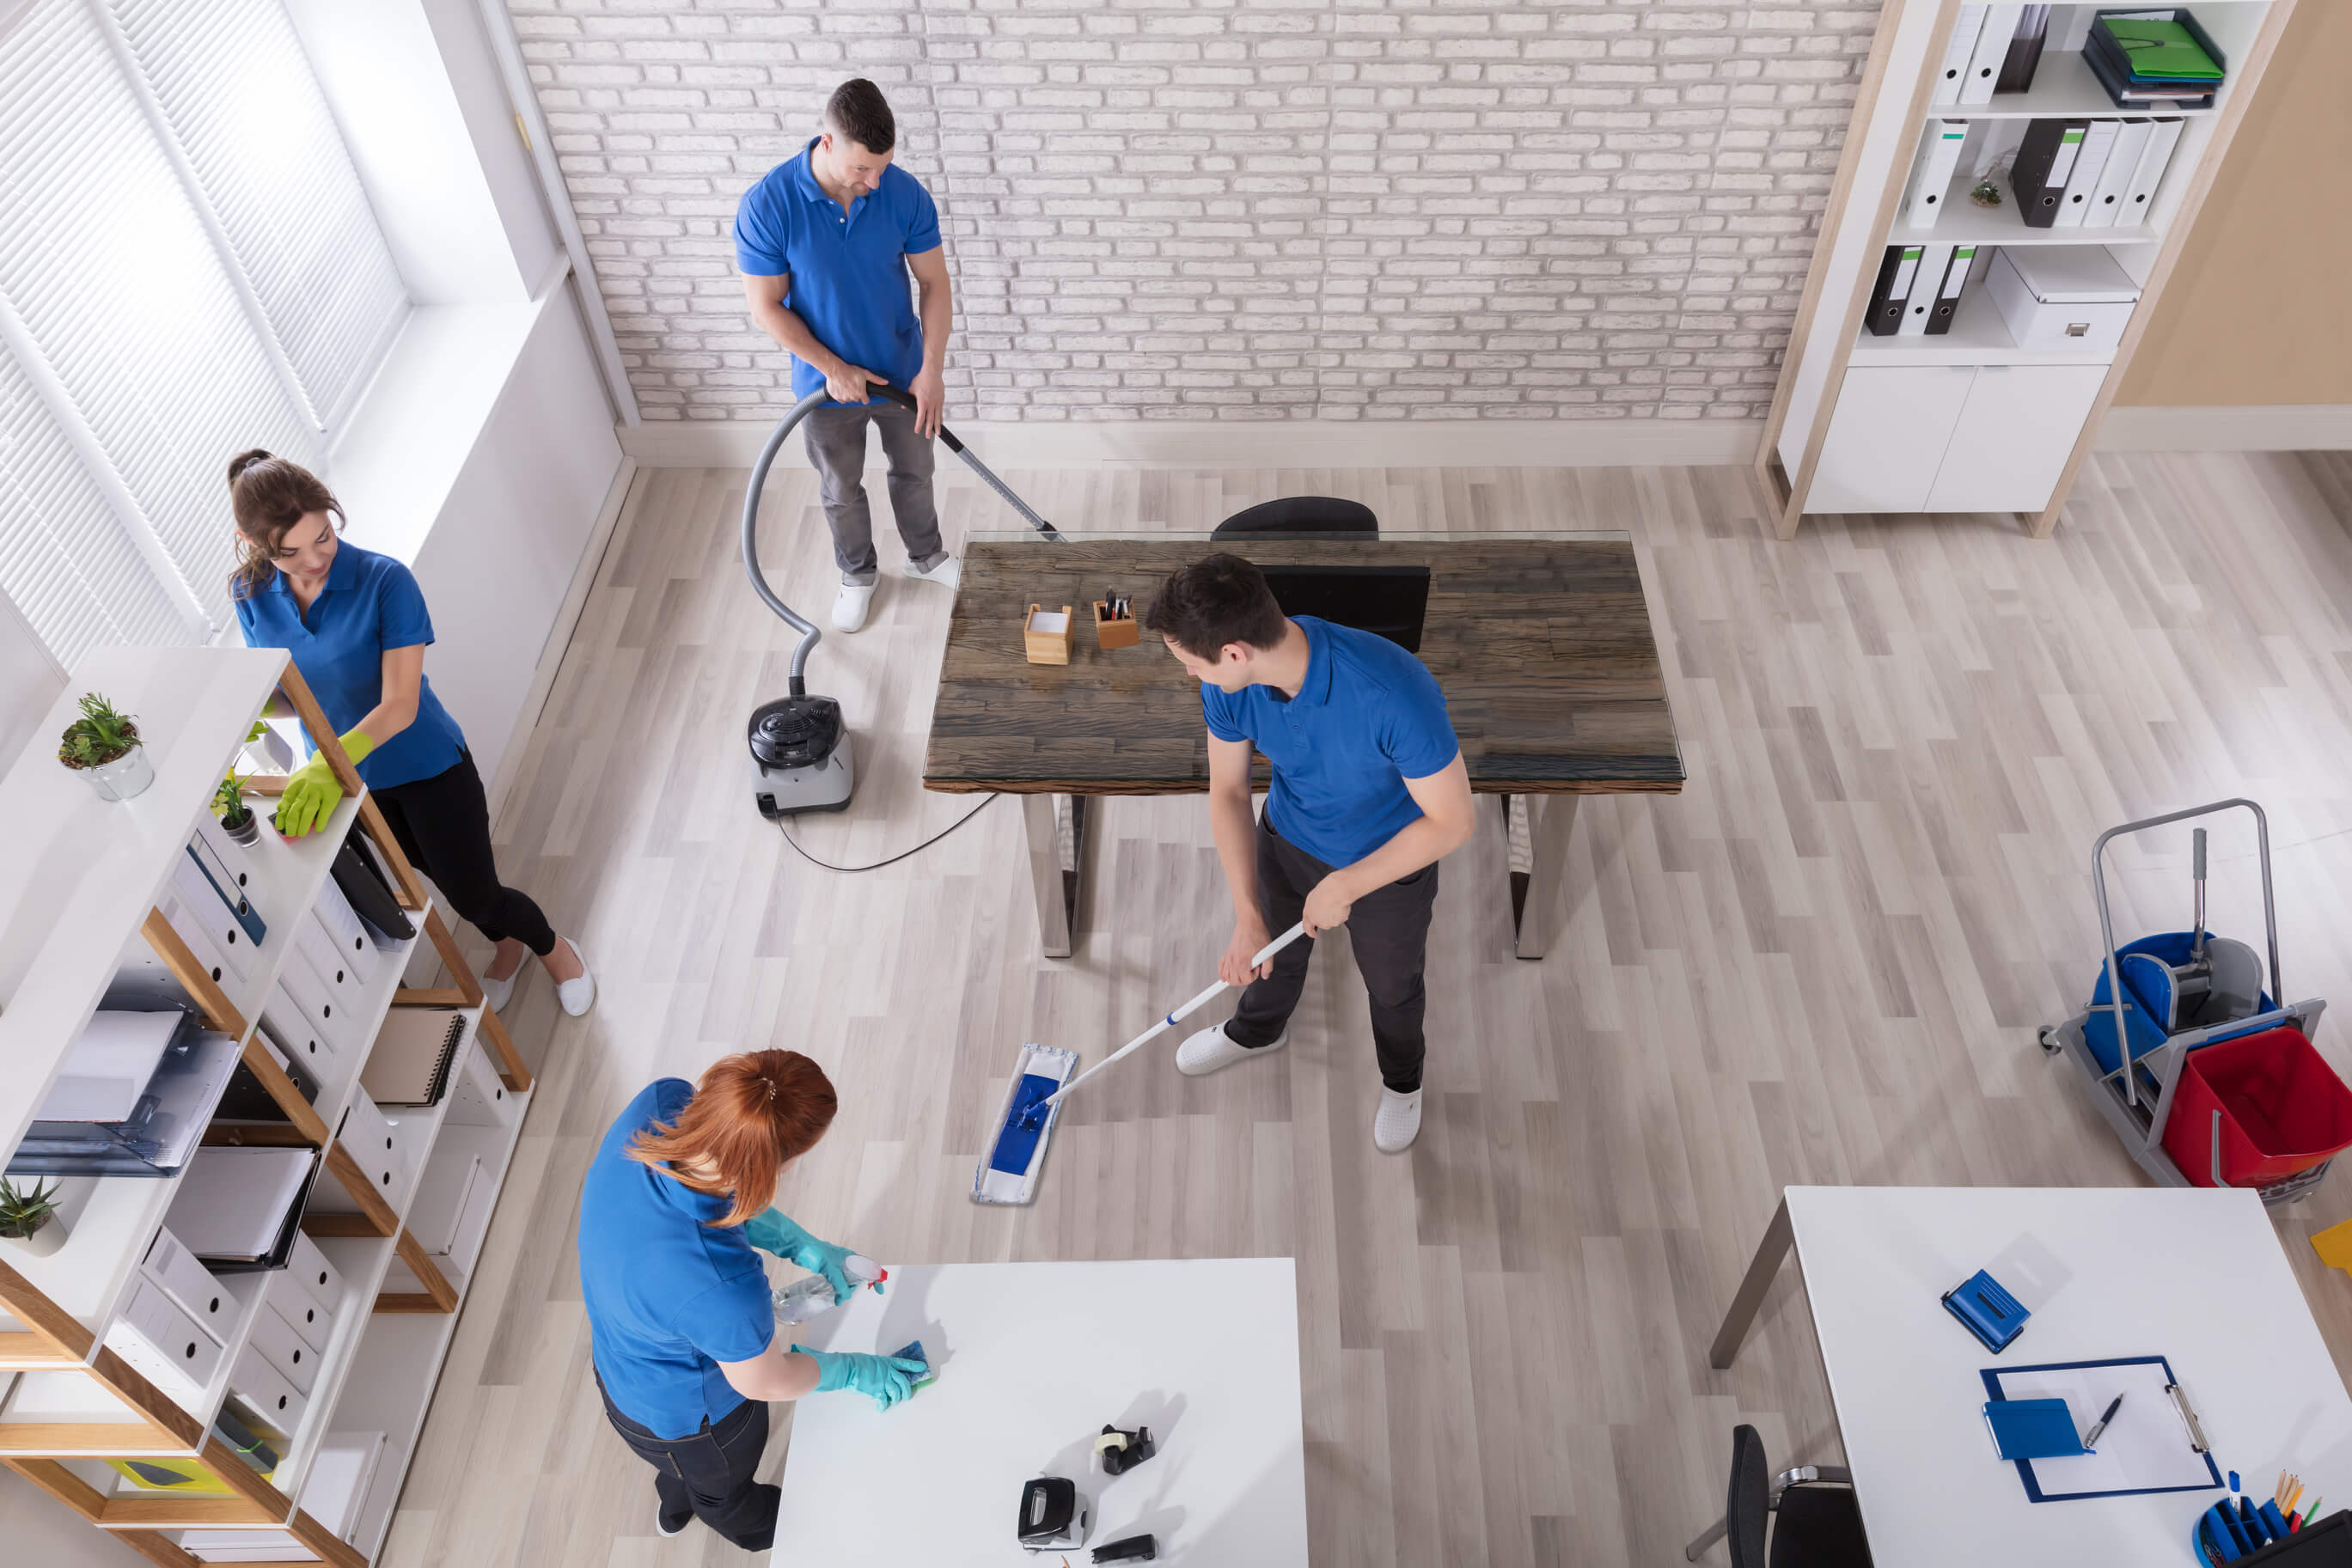 Janitors cleaning an office.